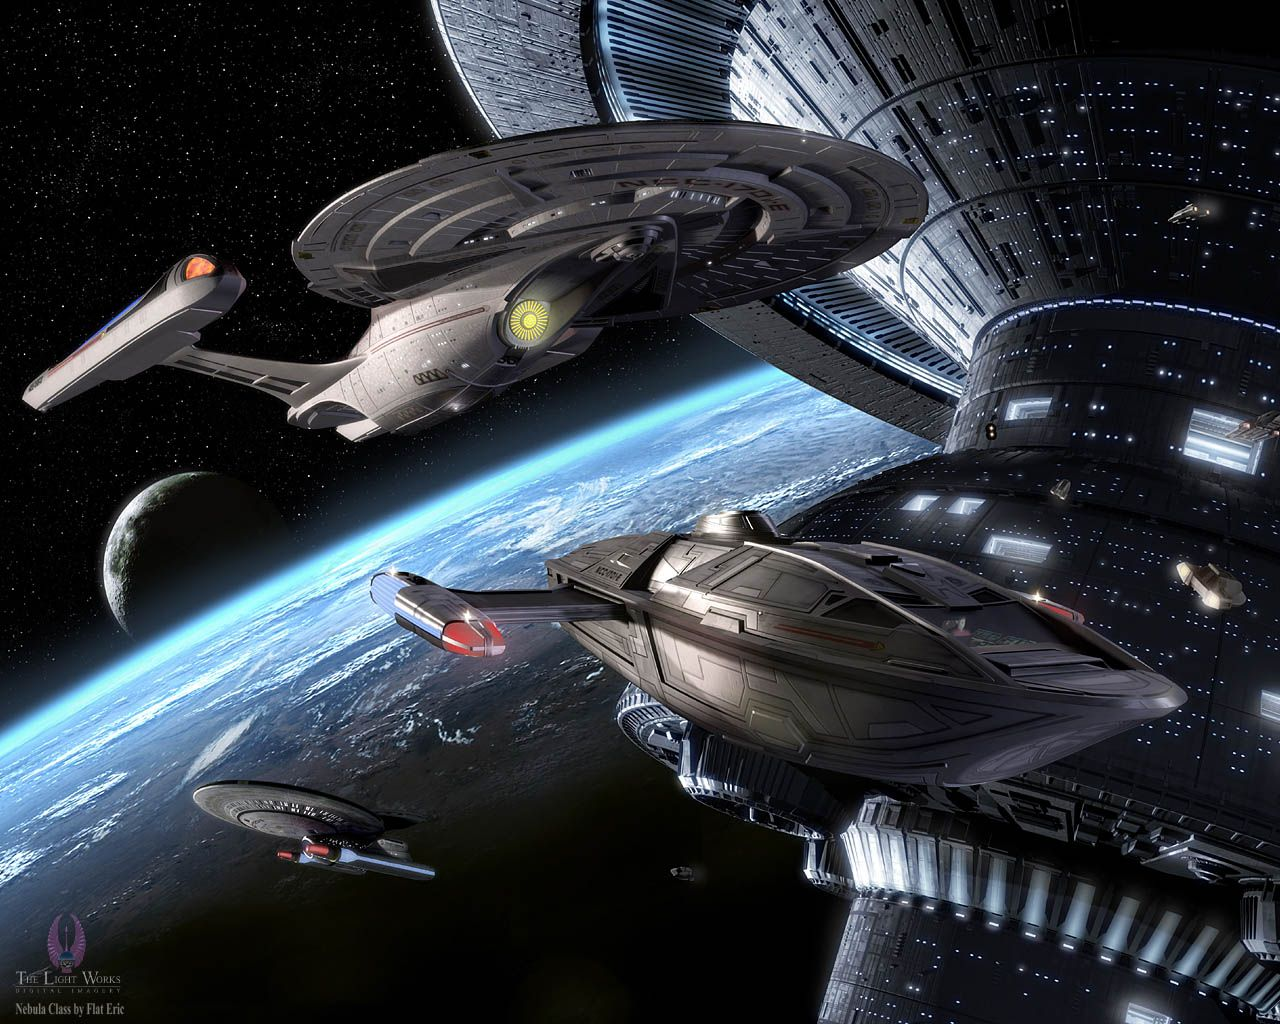 s star wars starship wallpapers - photo #39